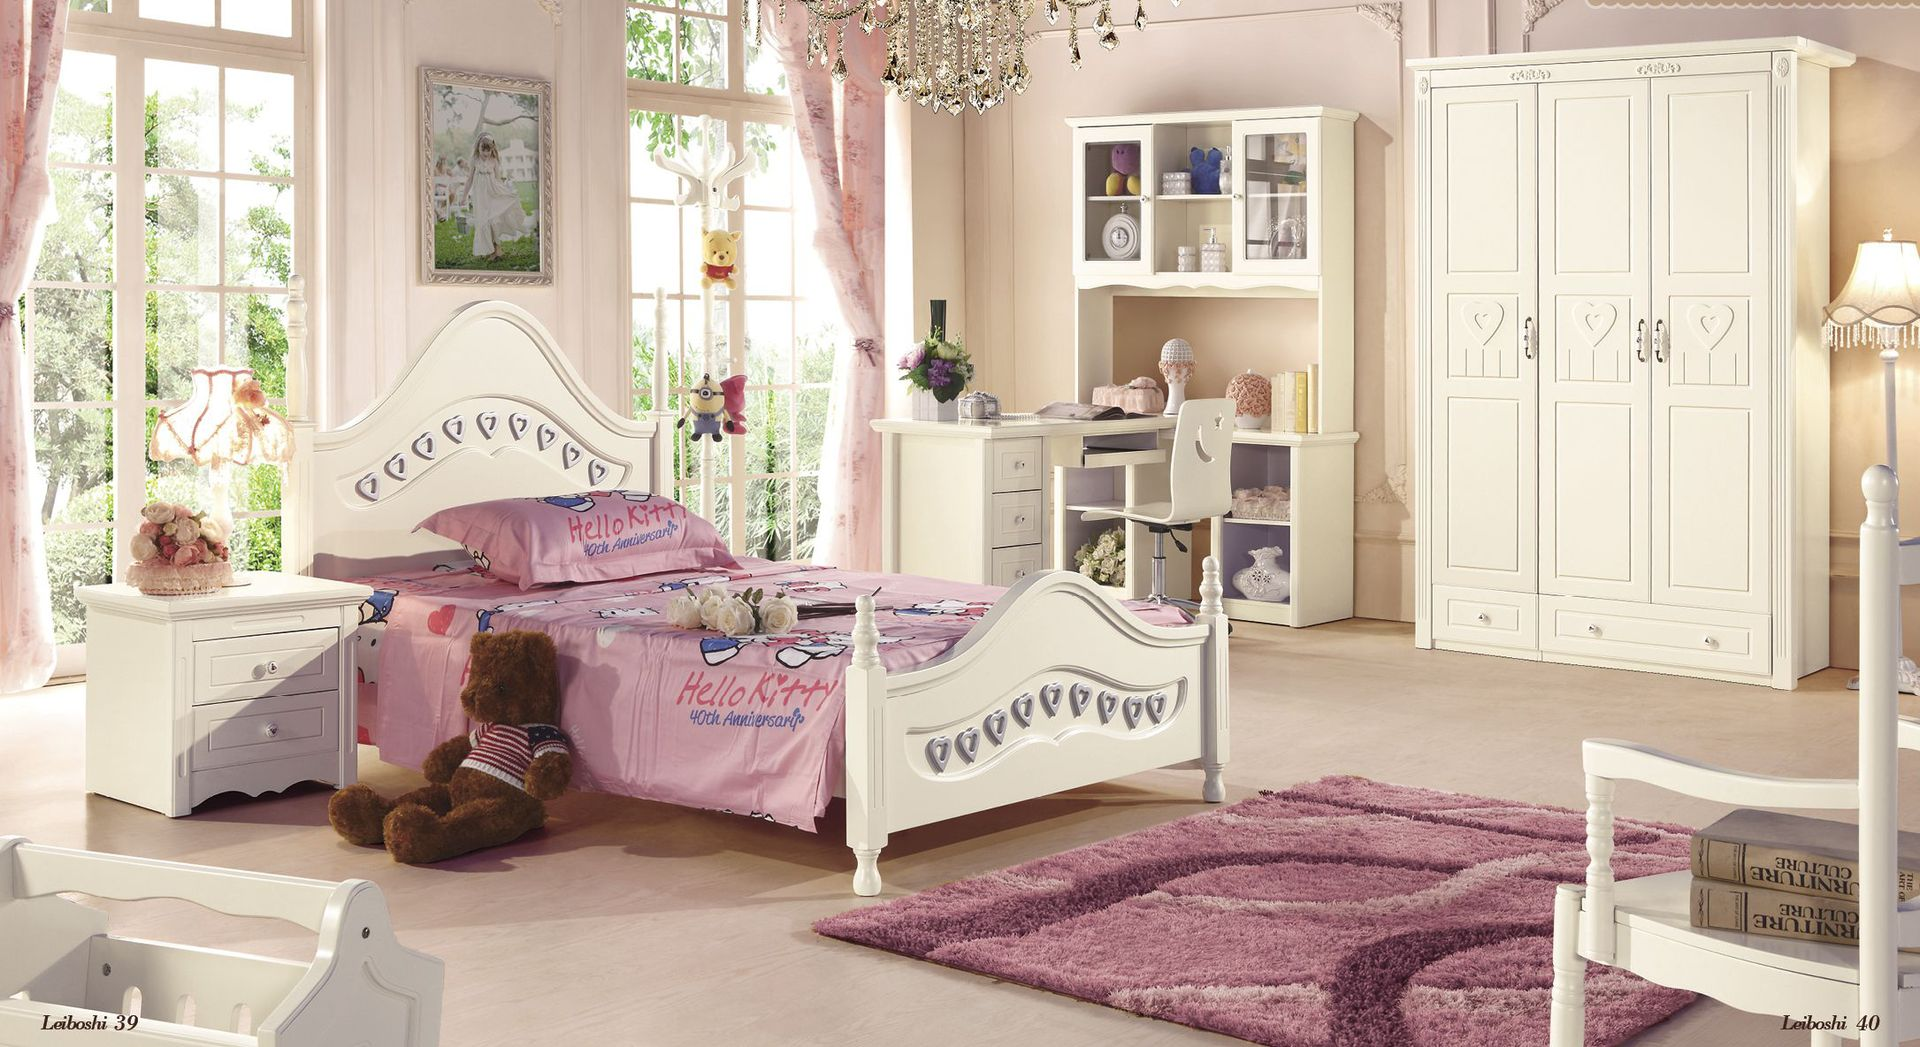 awesome furniture under design posters bedroom toddler unique new home interior